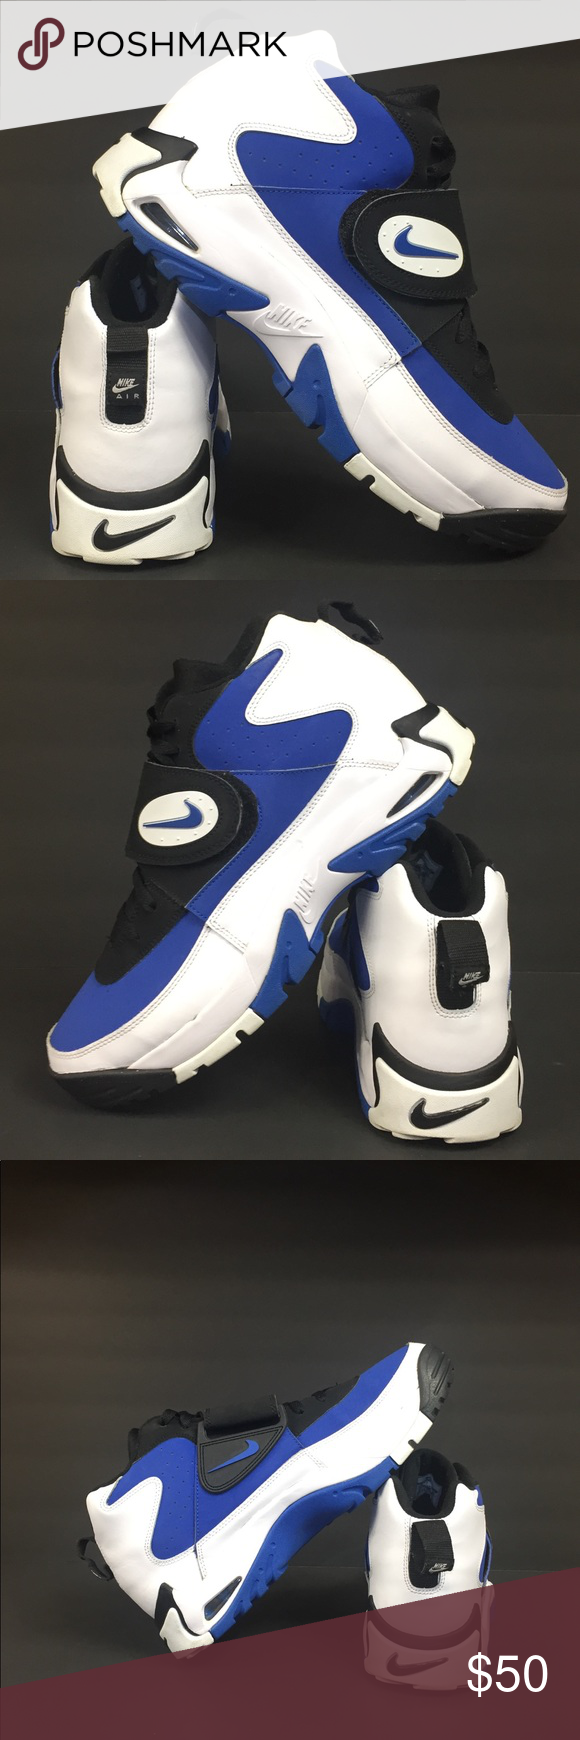 0ab48b4115 Nike Air Mission Junior Seau Black, white and blue Junior Seau. Used in  good condition. No box. Signs of wear shown in photos (soles-top&bottom),  ...